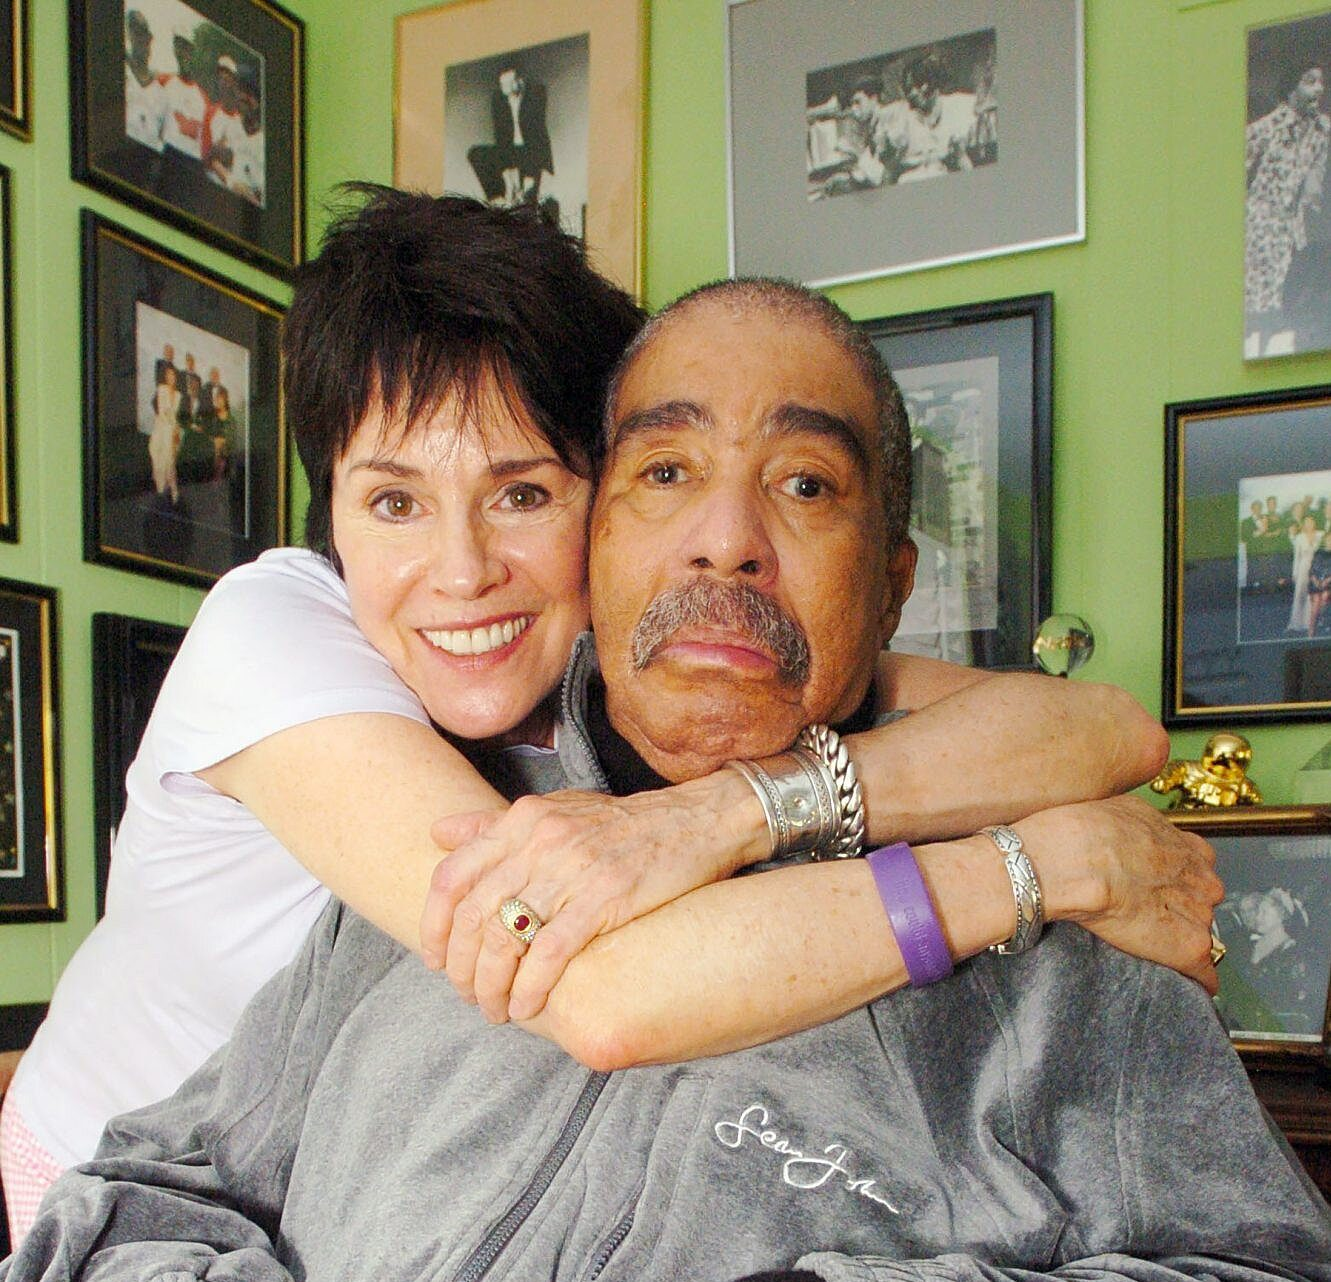 image 27 e1607604438446 20 Things You Might Not Have Known About Richard Pryor